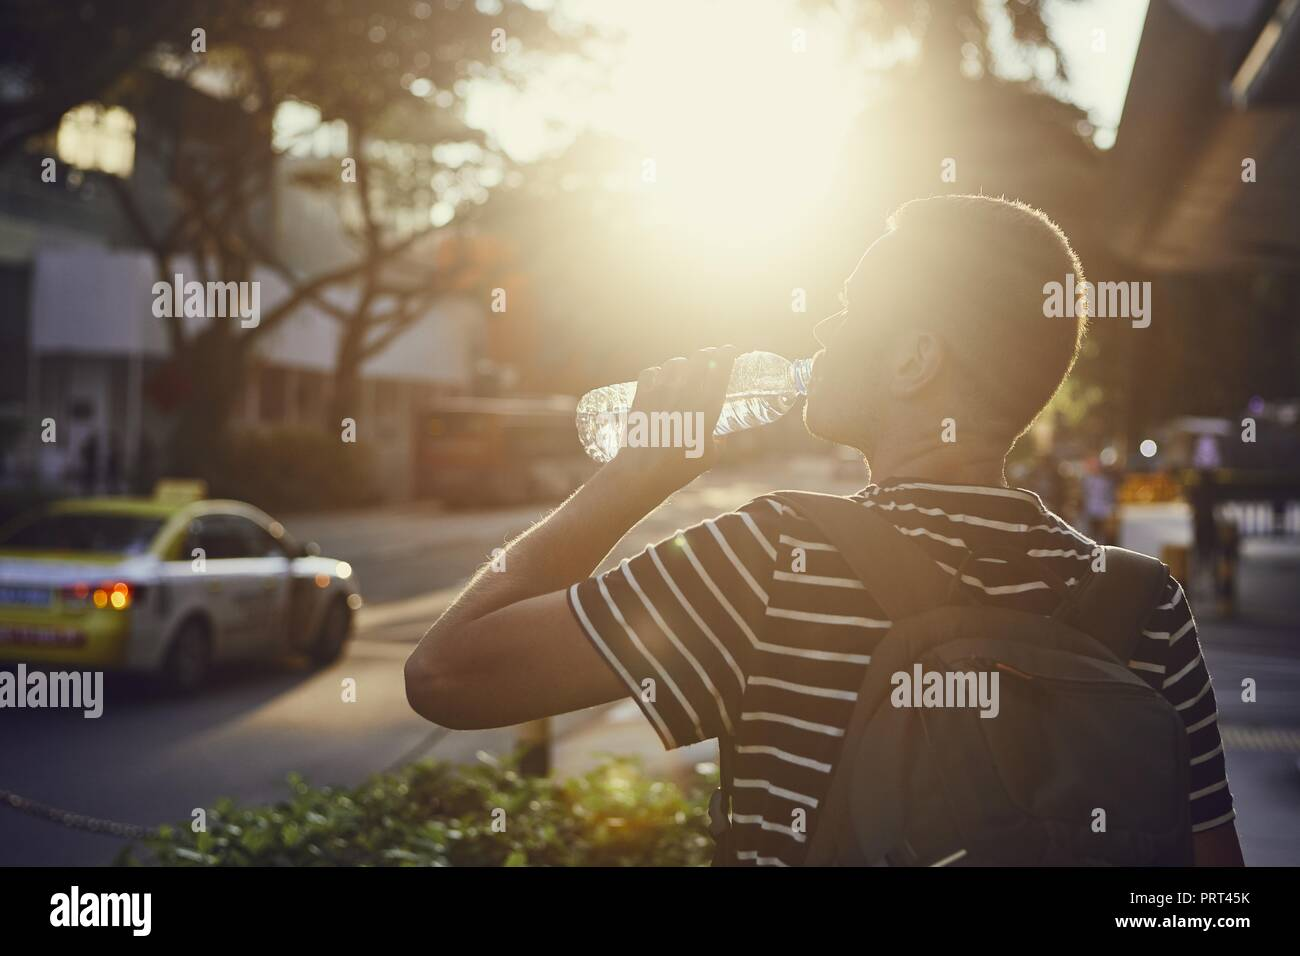 Young man drinking water from bottle during walk on street at sunset. - Stock Image